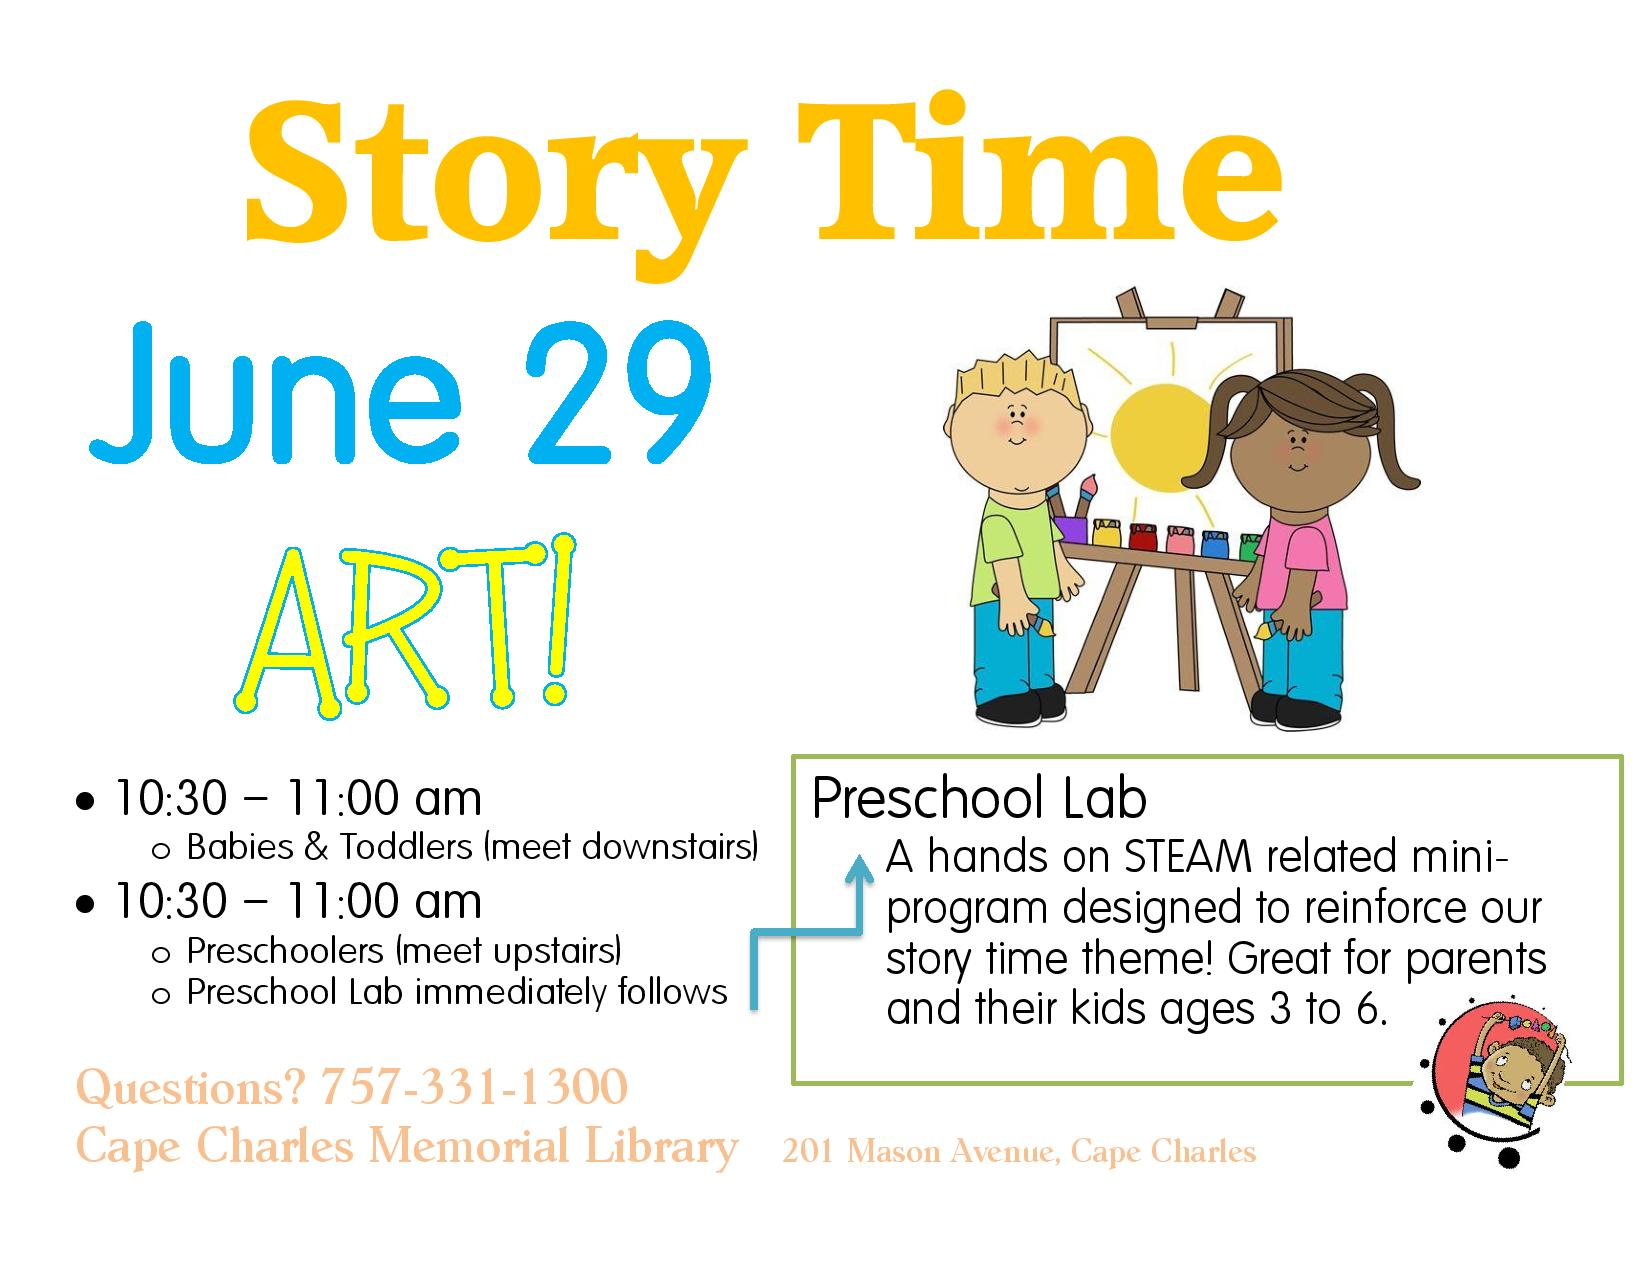 Preschool Lab and Story Time